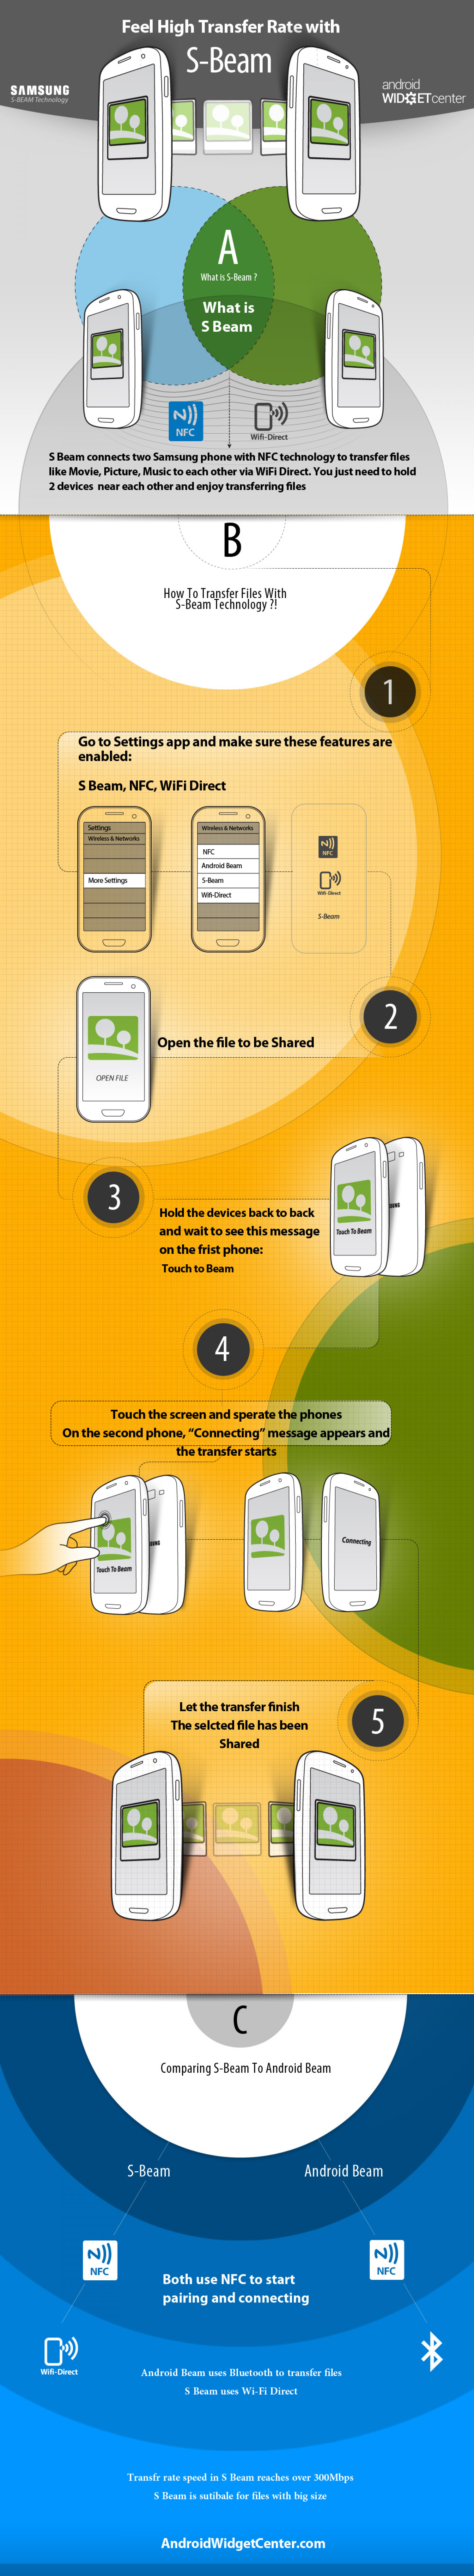 Feel High Transfer Rate with Samsung S Beam Infographic